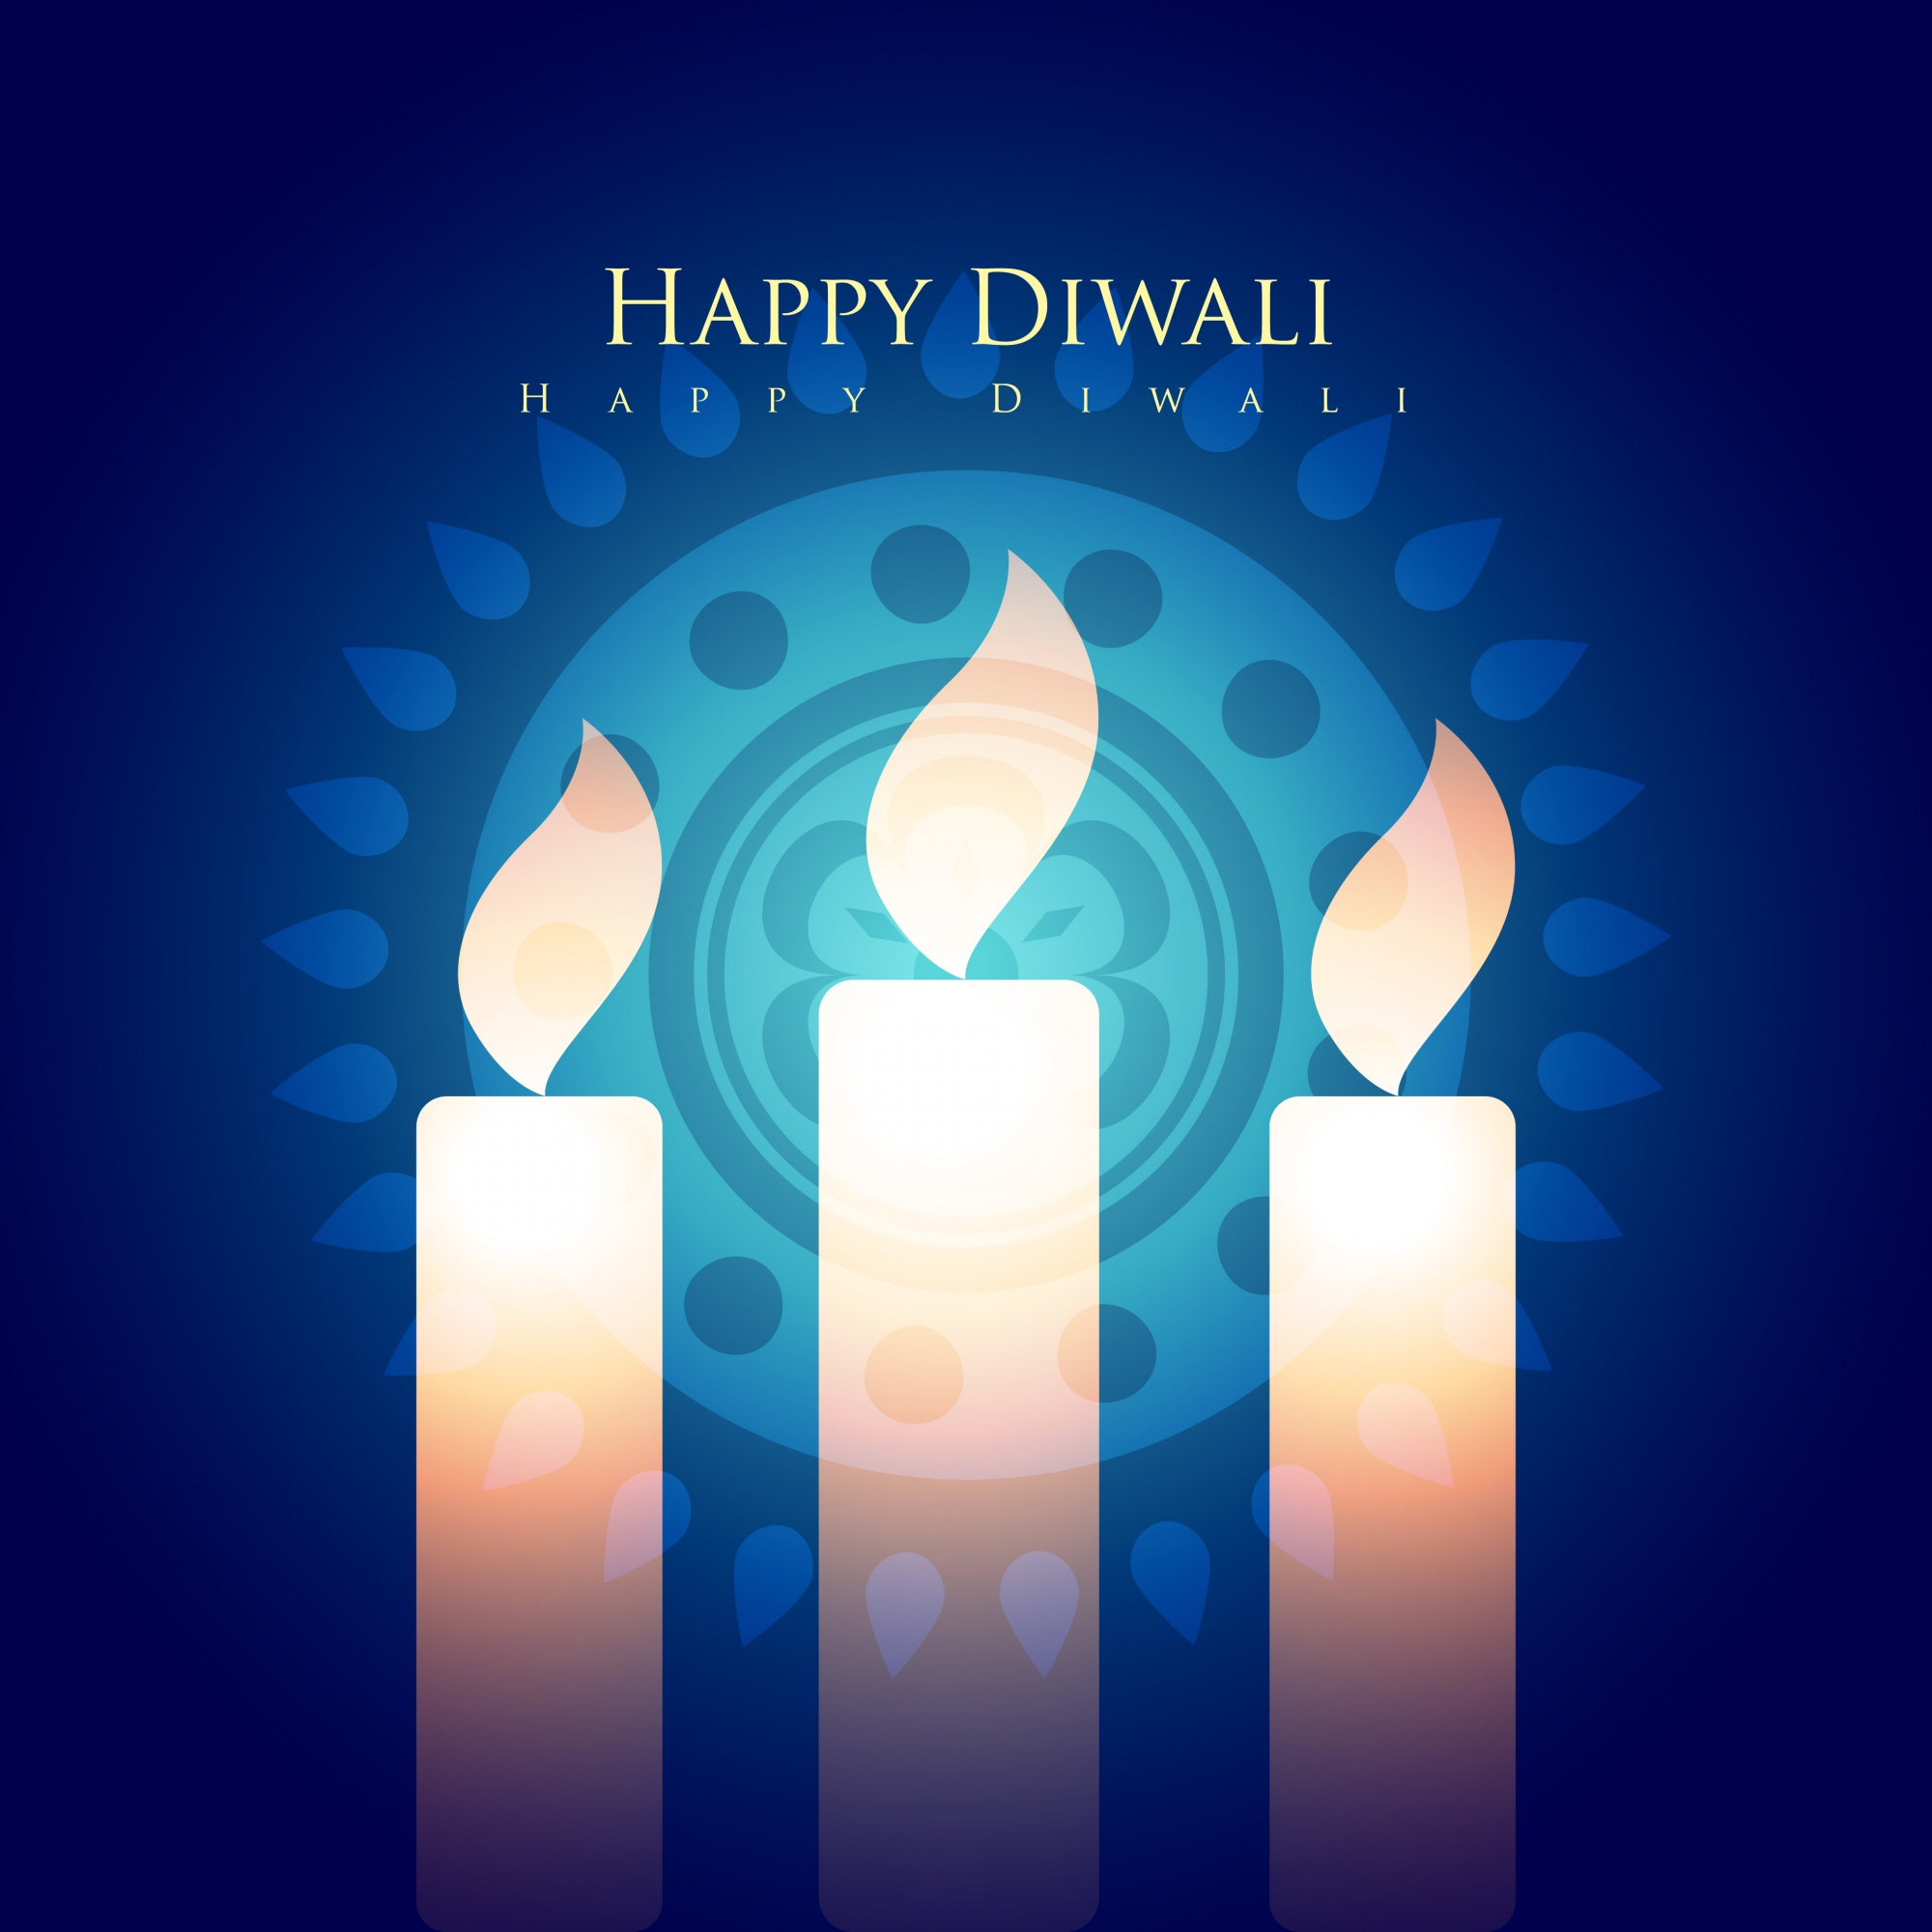 Blue design for diwali festival with candles